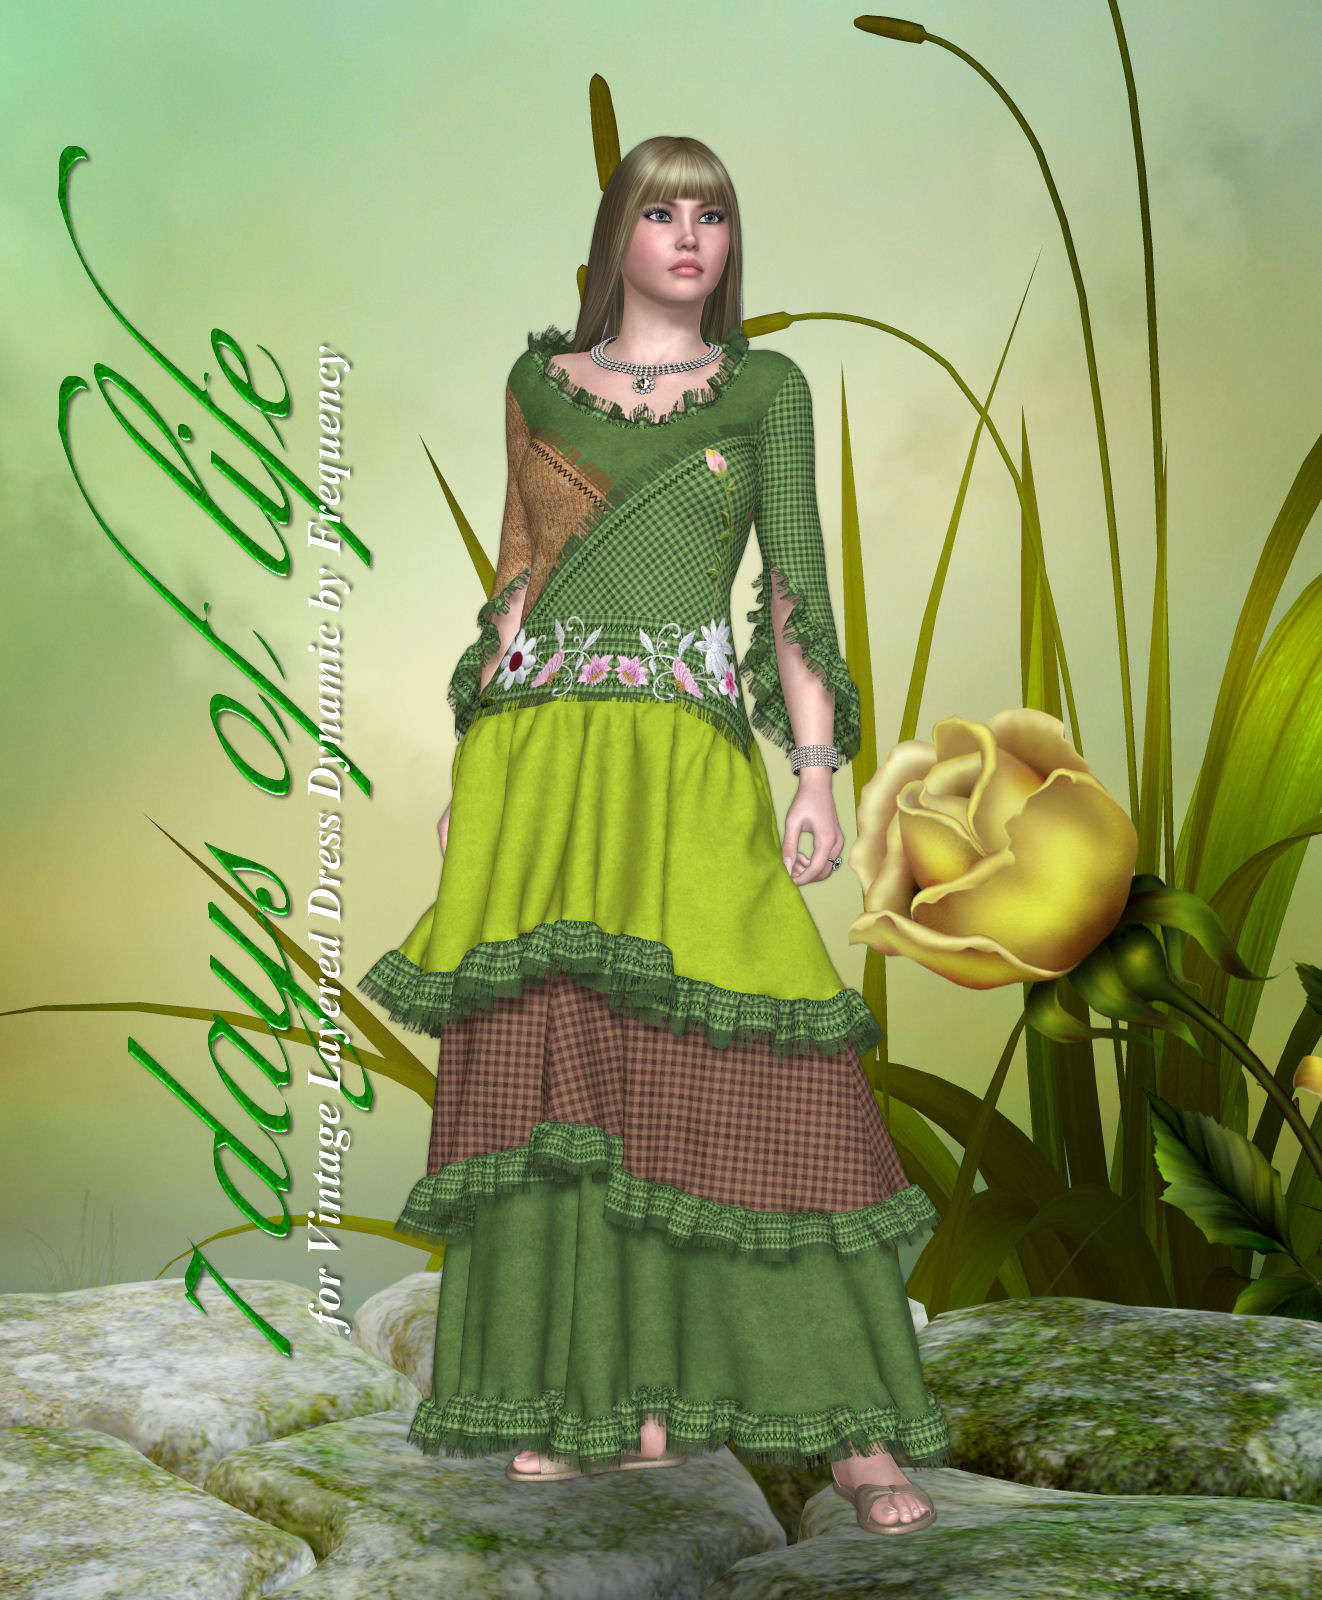 DA-7 Days of life for Vintage Layered Dress Dynamic by Frequency